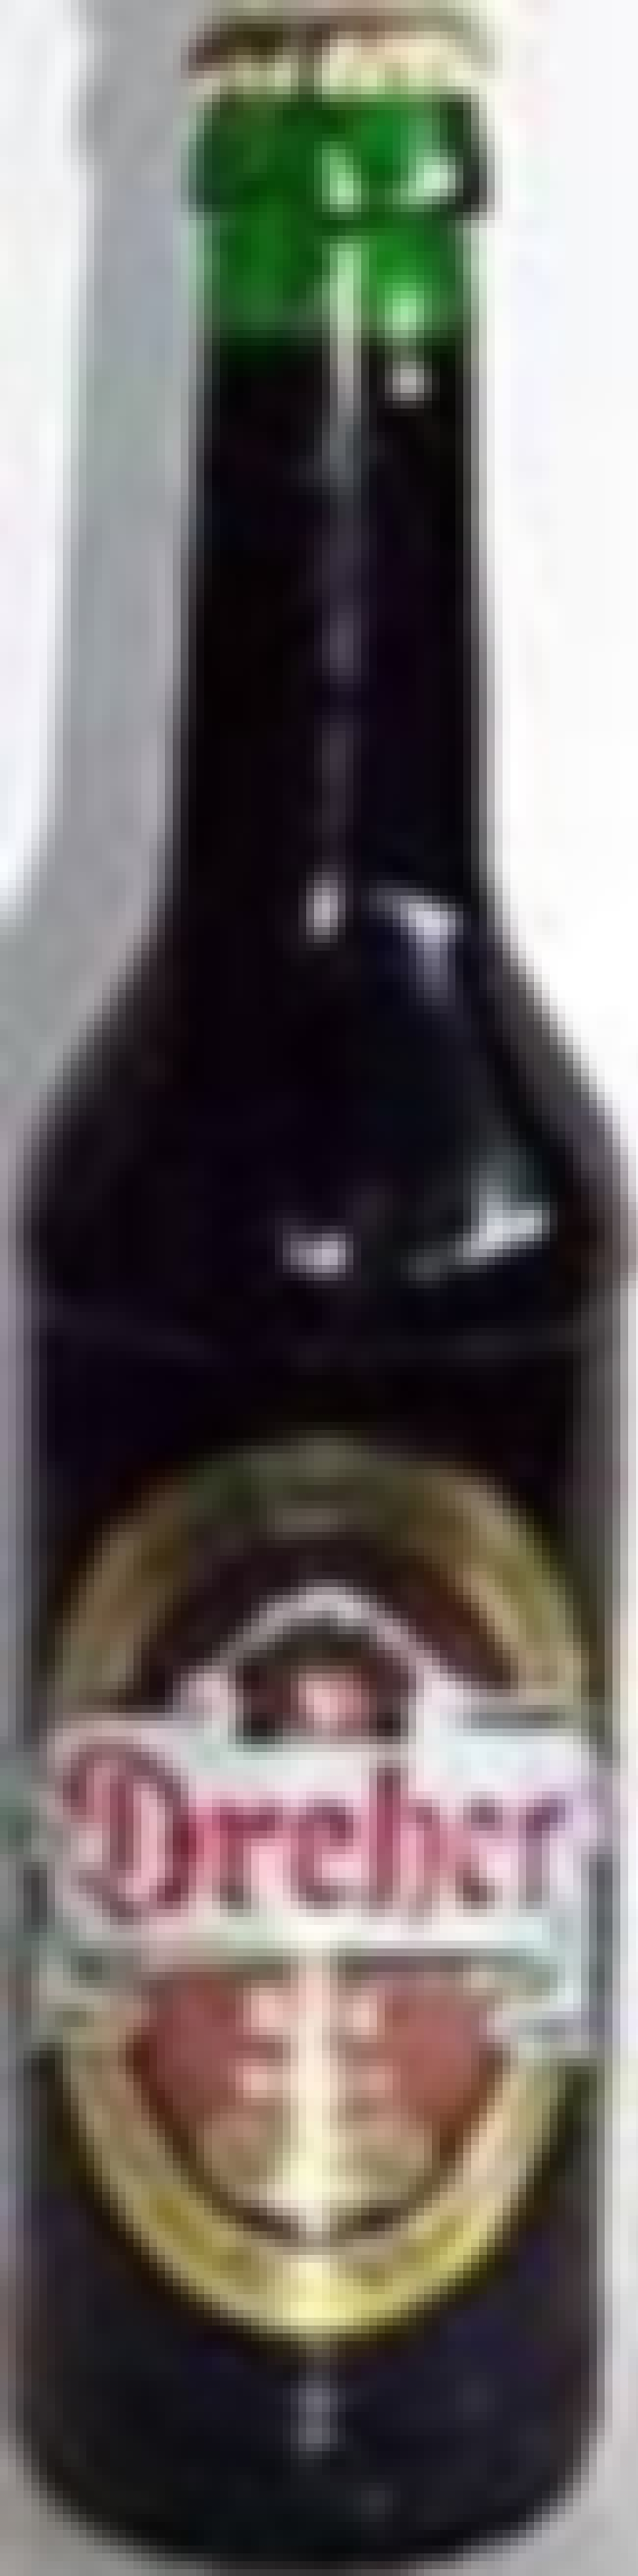 Dreher Bak is listed (or ranked) 2 on the list Beers with 7.3 Percent Alcohol Content